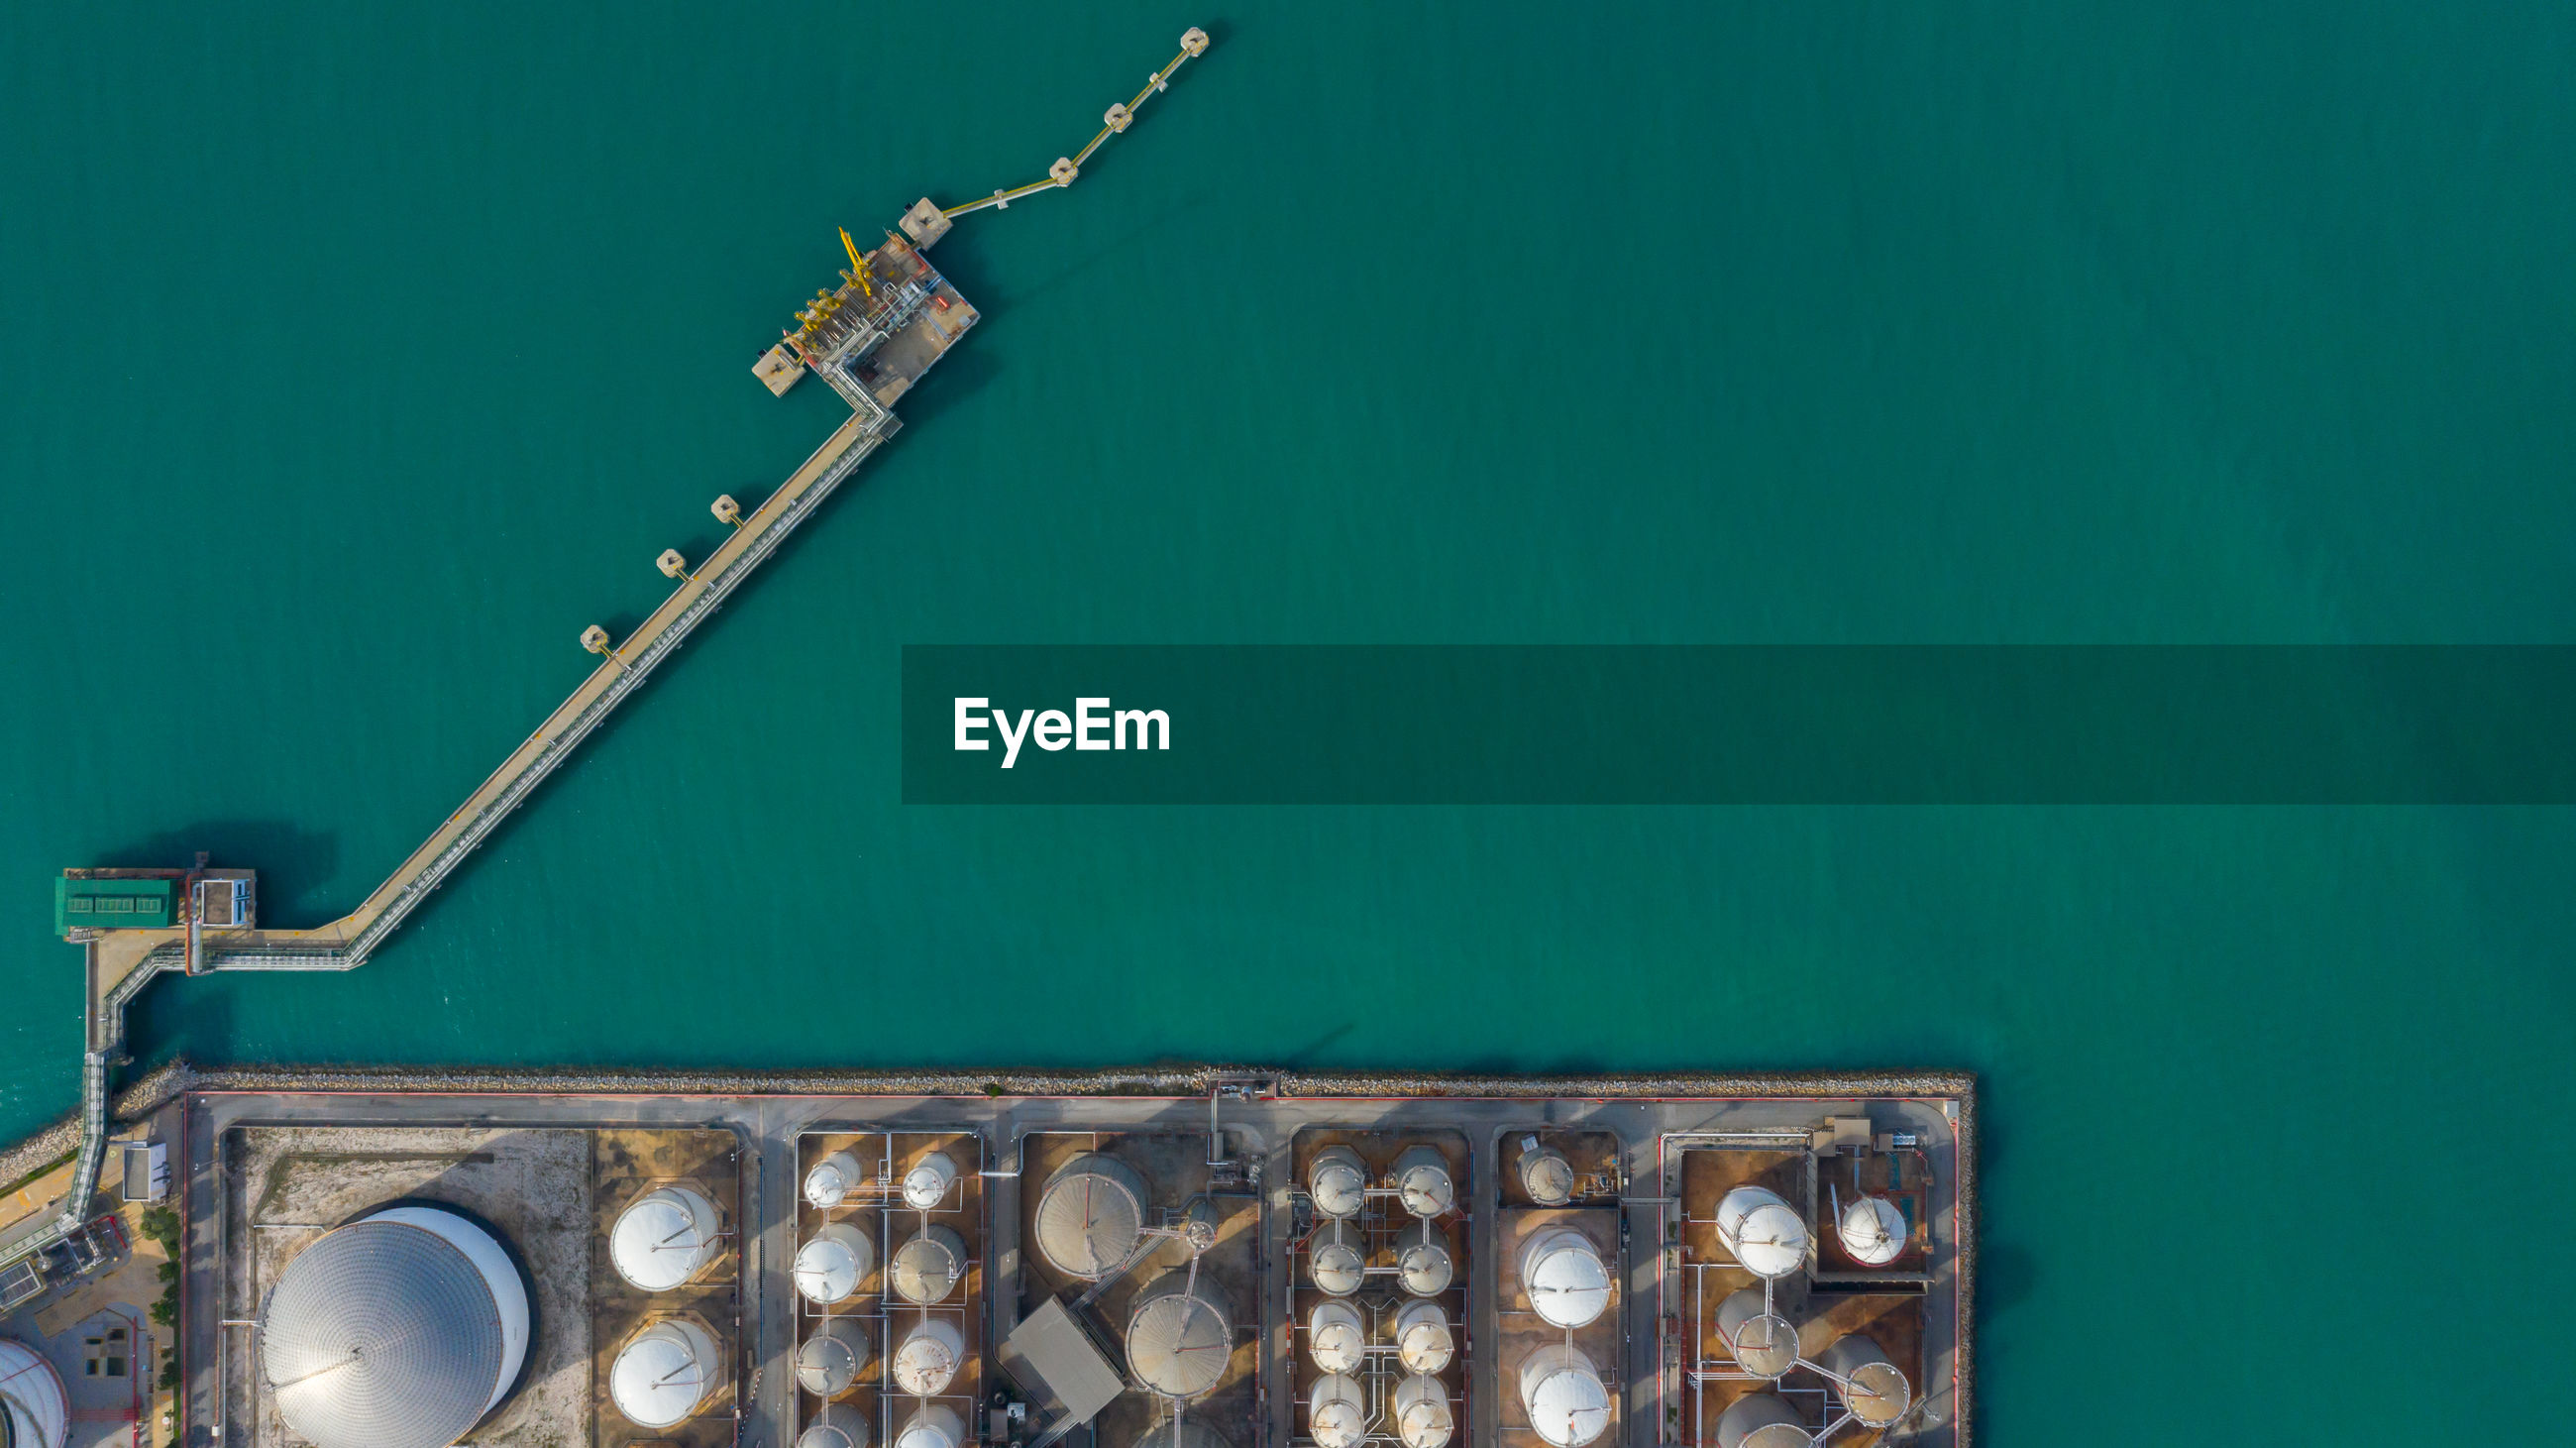 Aerial view of oil and gas industry by sea